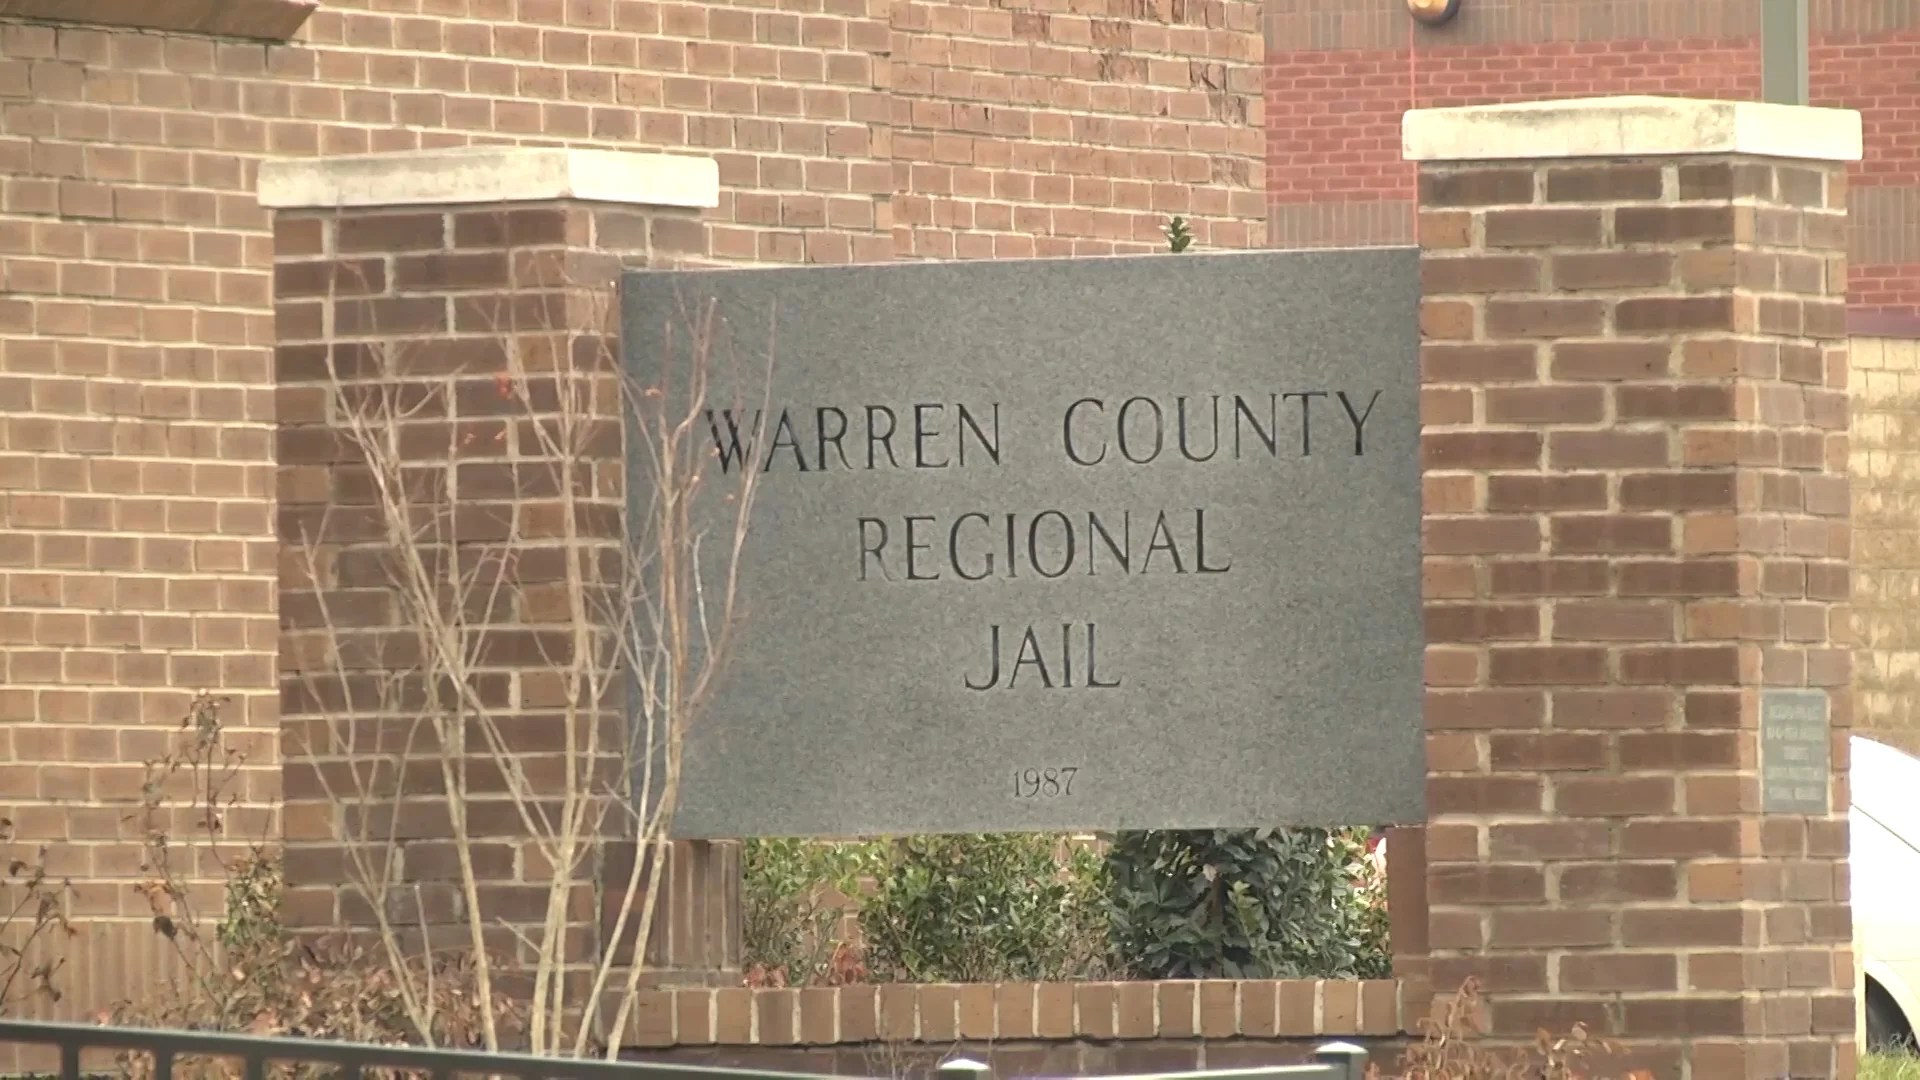 New Re Entry Program For Inmates Coming To The Warren